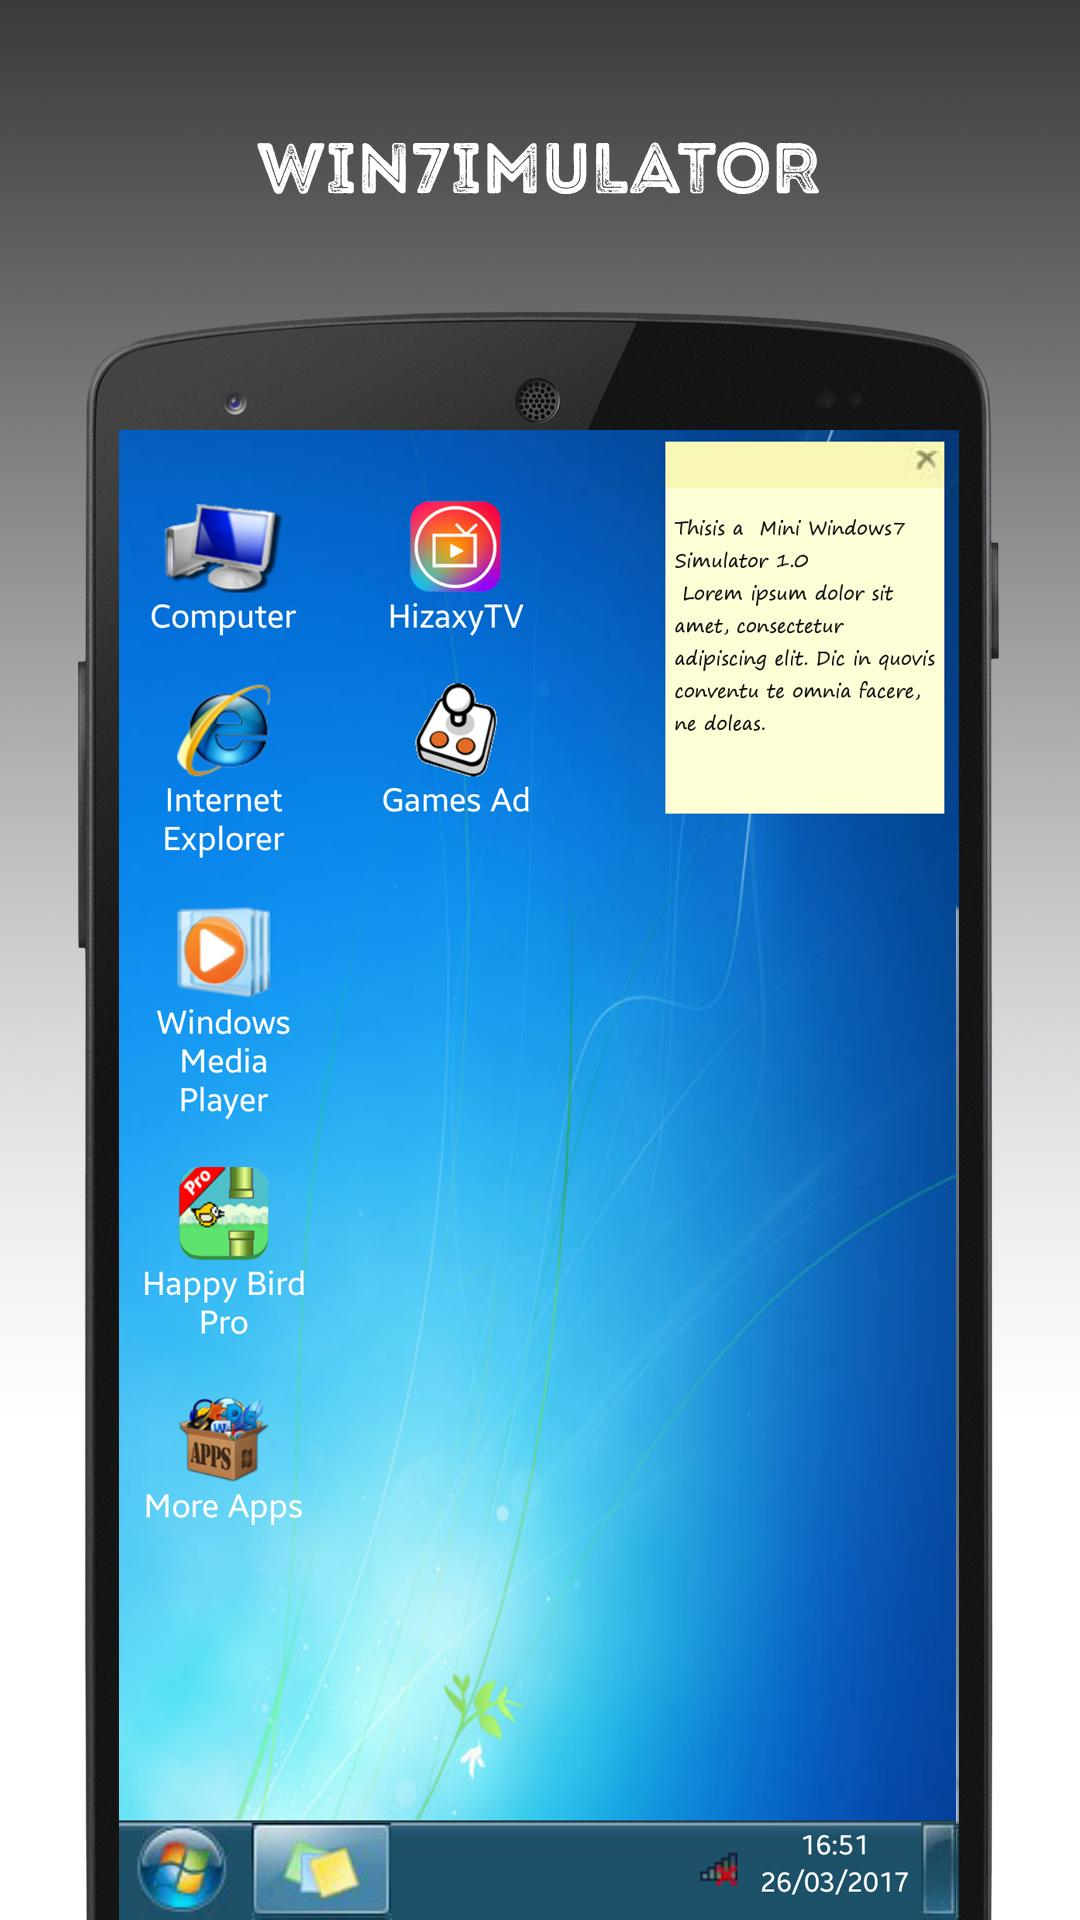 7imulator : Simulator for Windows7 for Android - APK Download